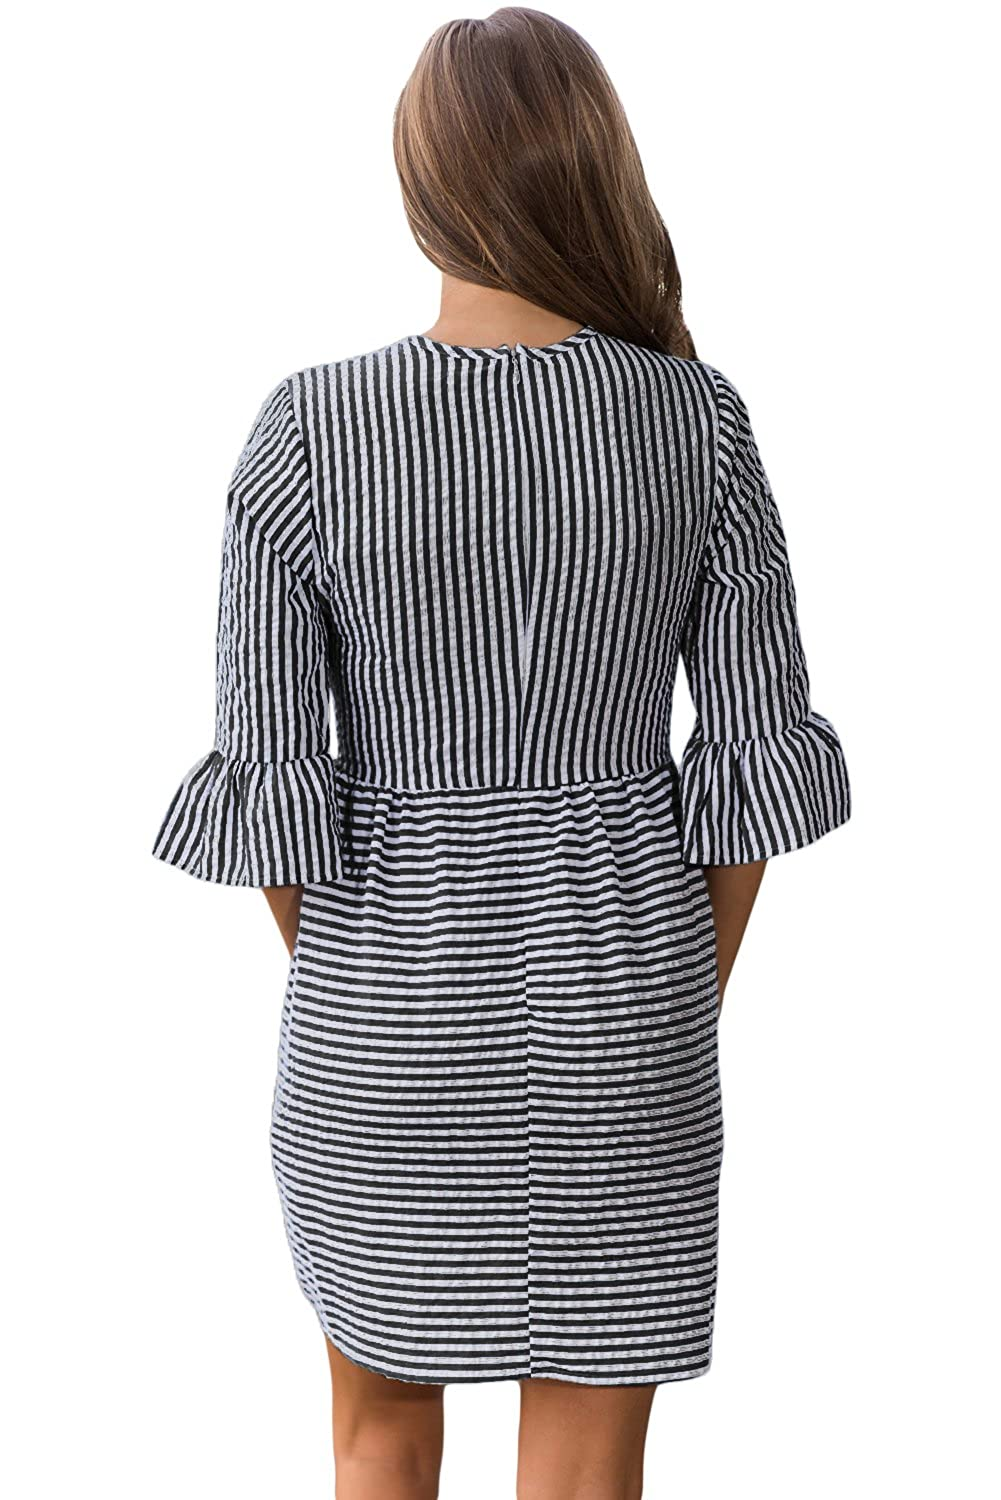 cd4c709e4ab Women s Summer Casual Stripe Flounce 3 4 Flounce Sleeve Round Neck Seersucker  Babydoll With Bell Sleeves Dress at Amazon Women s Clothing store